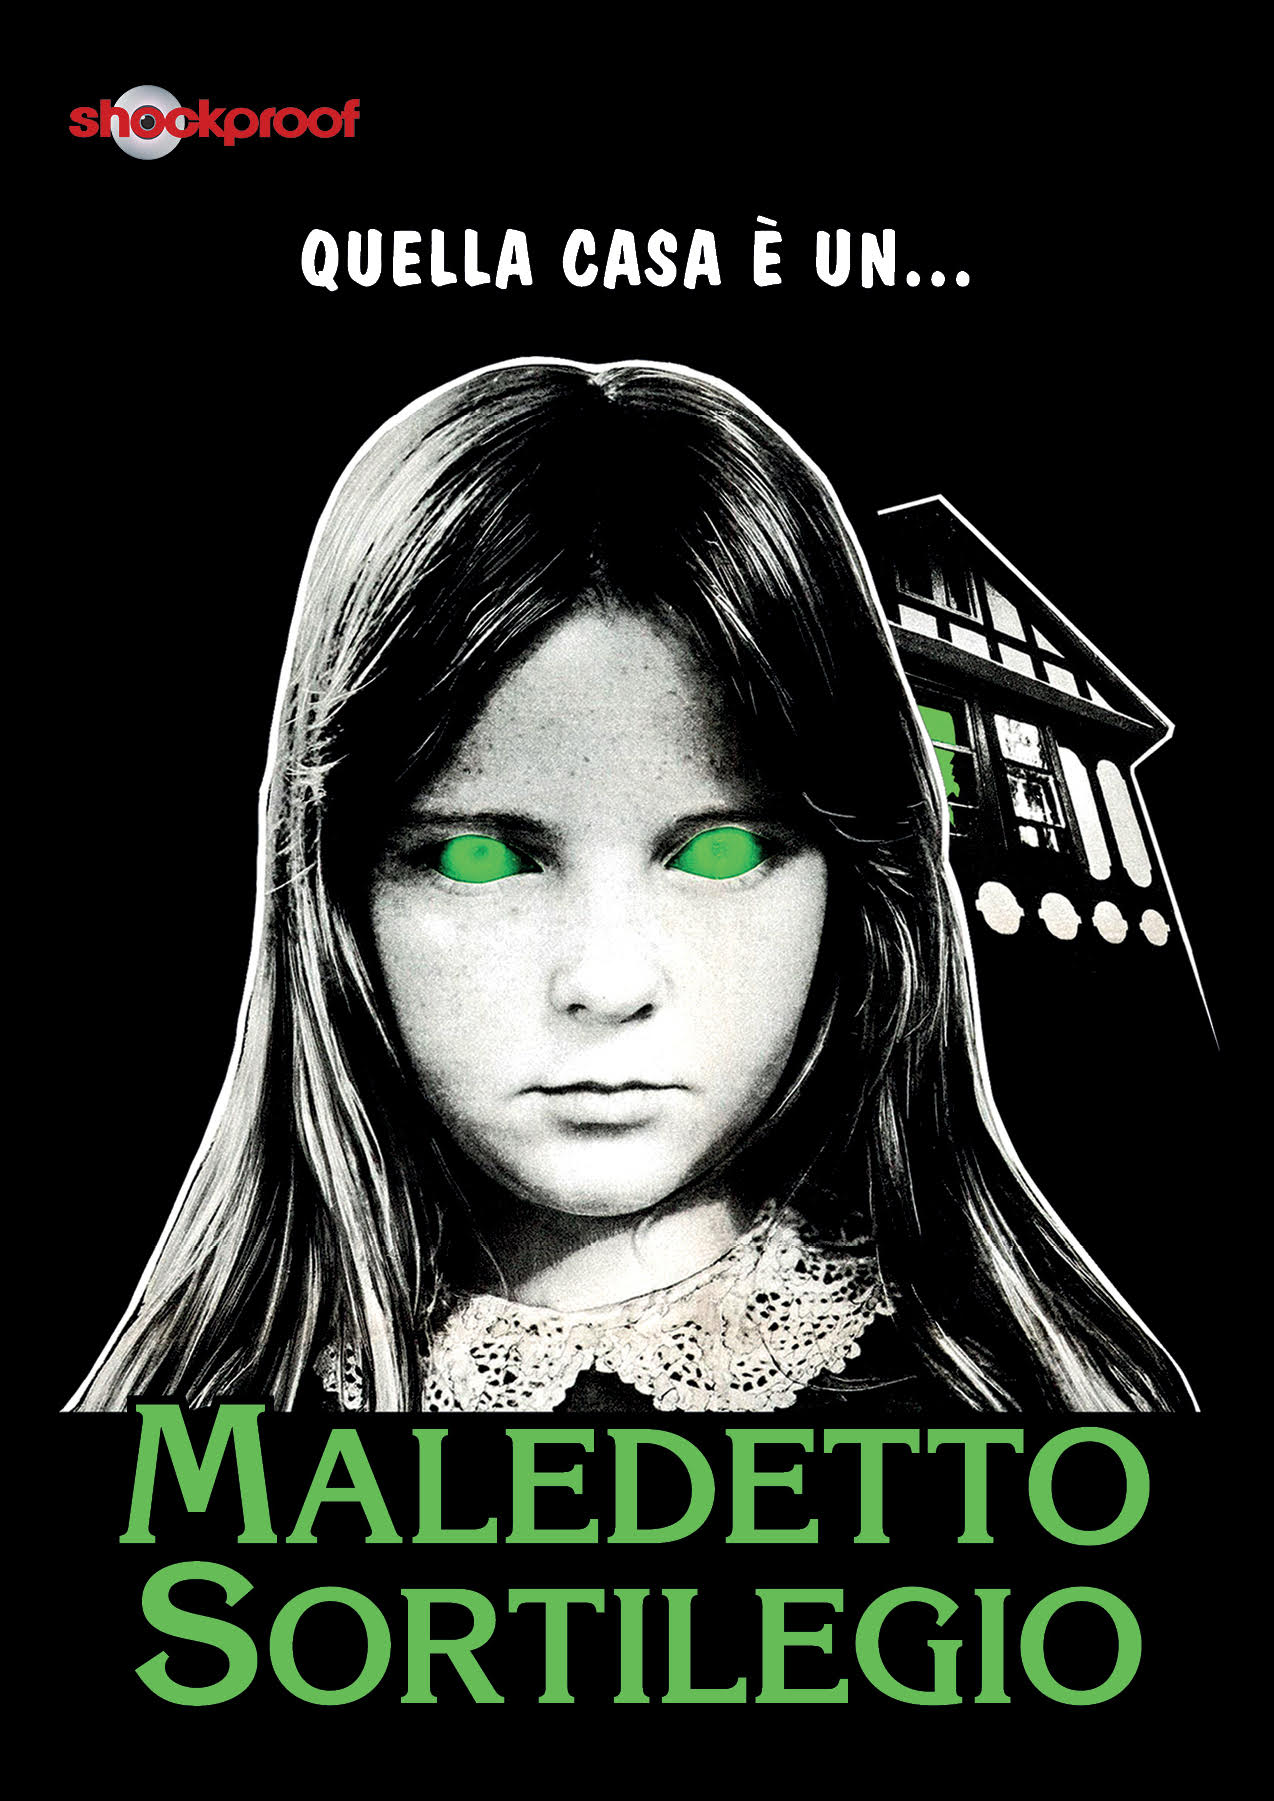 MALEDETTO SORTILEGIO (SHOCKPROOF) (DVD)